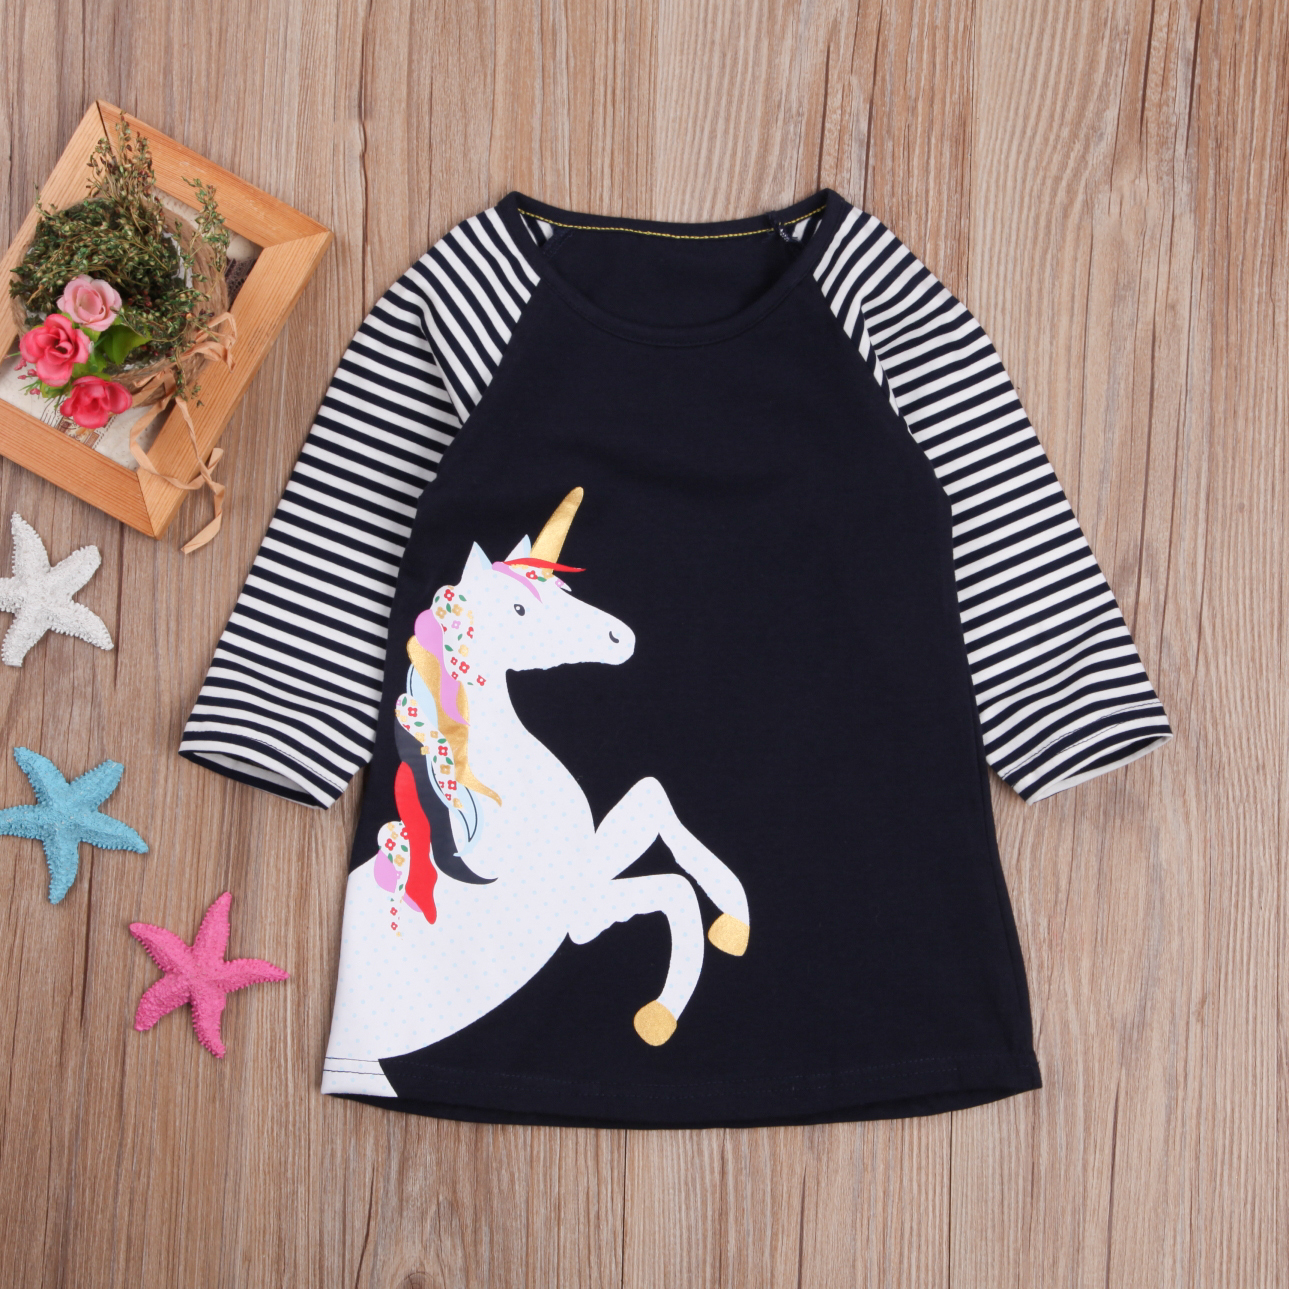 HTB1MjzWc6bguuRkHFrdq6z.LFXao NEWEST Baby Girl Dress with Animals Princess Long Sleeve Dresses Children Autumn Clothing for Kids